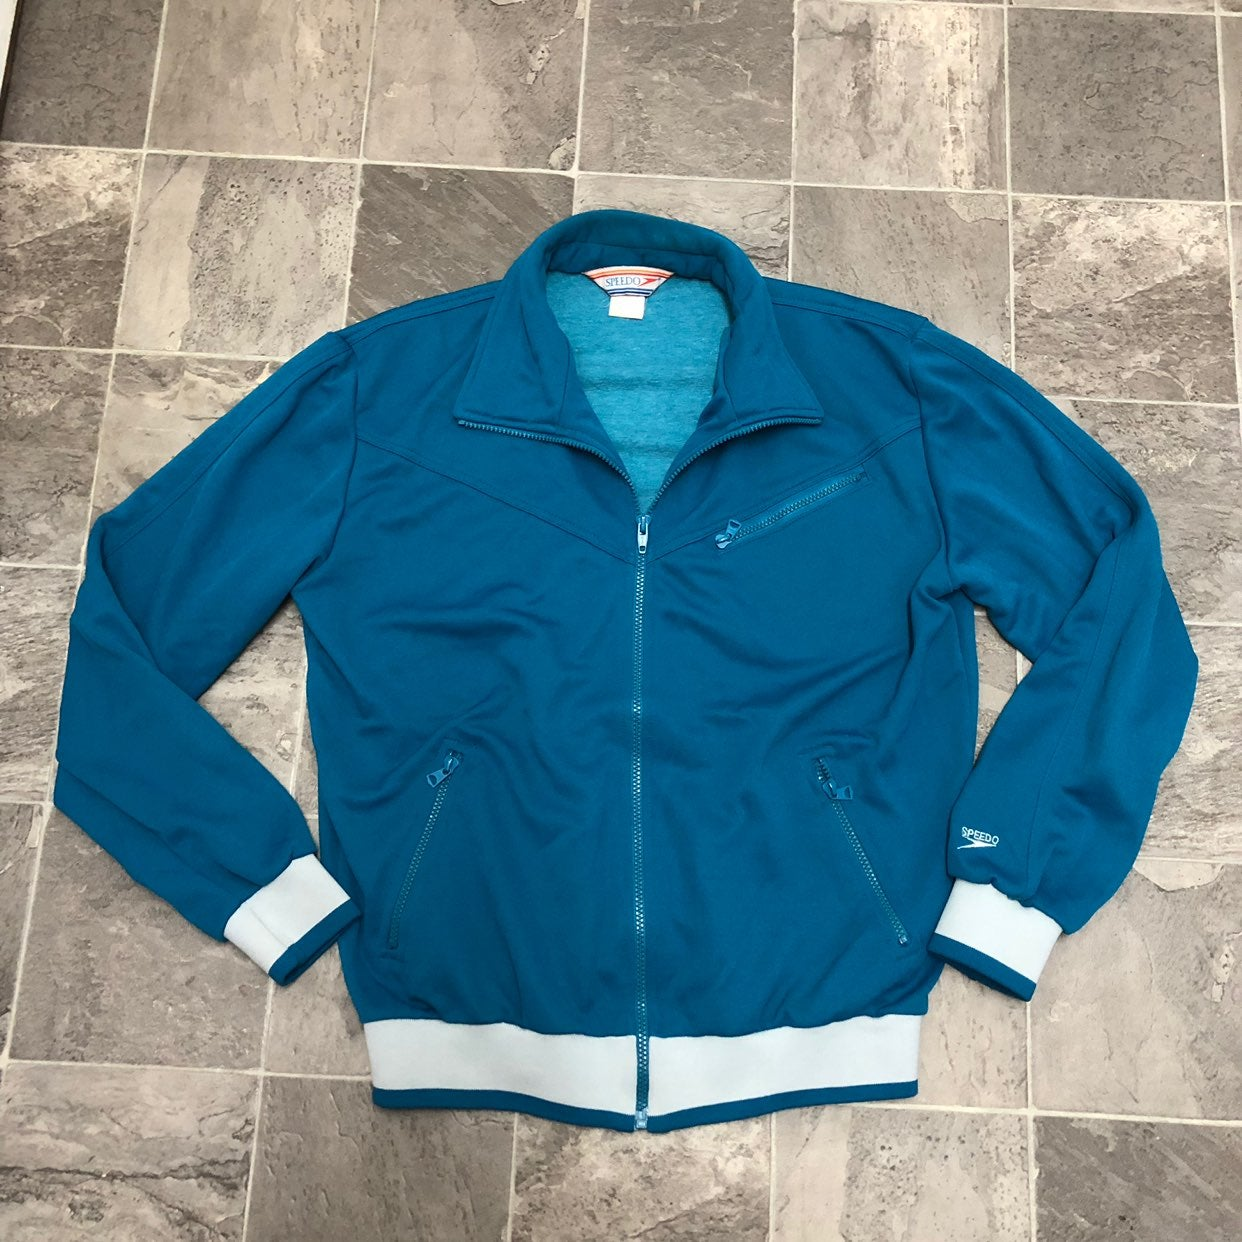 Men's Vintage 80s Speedo Track Jacket